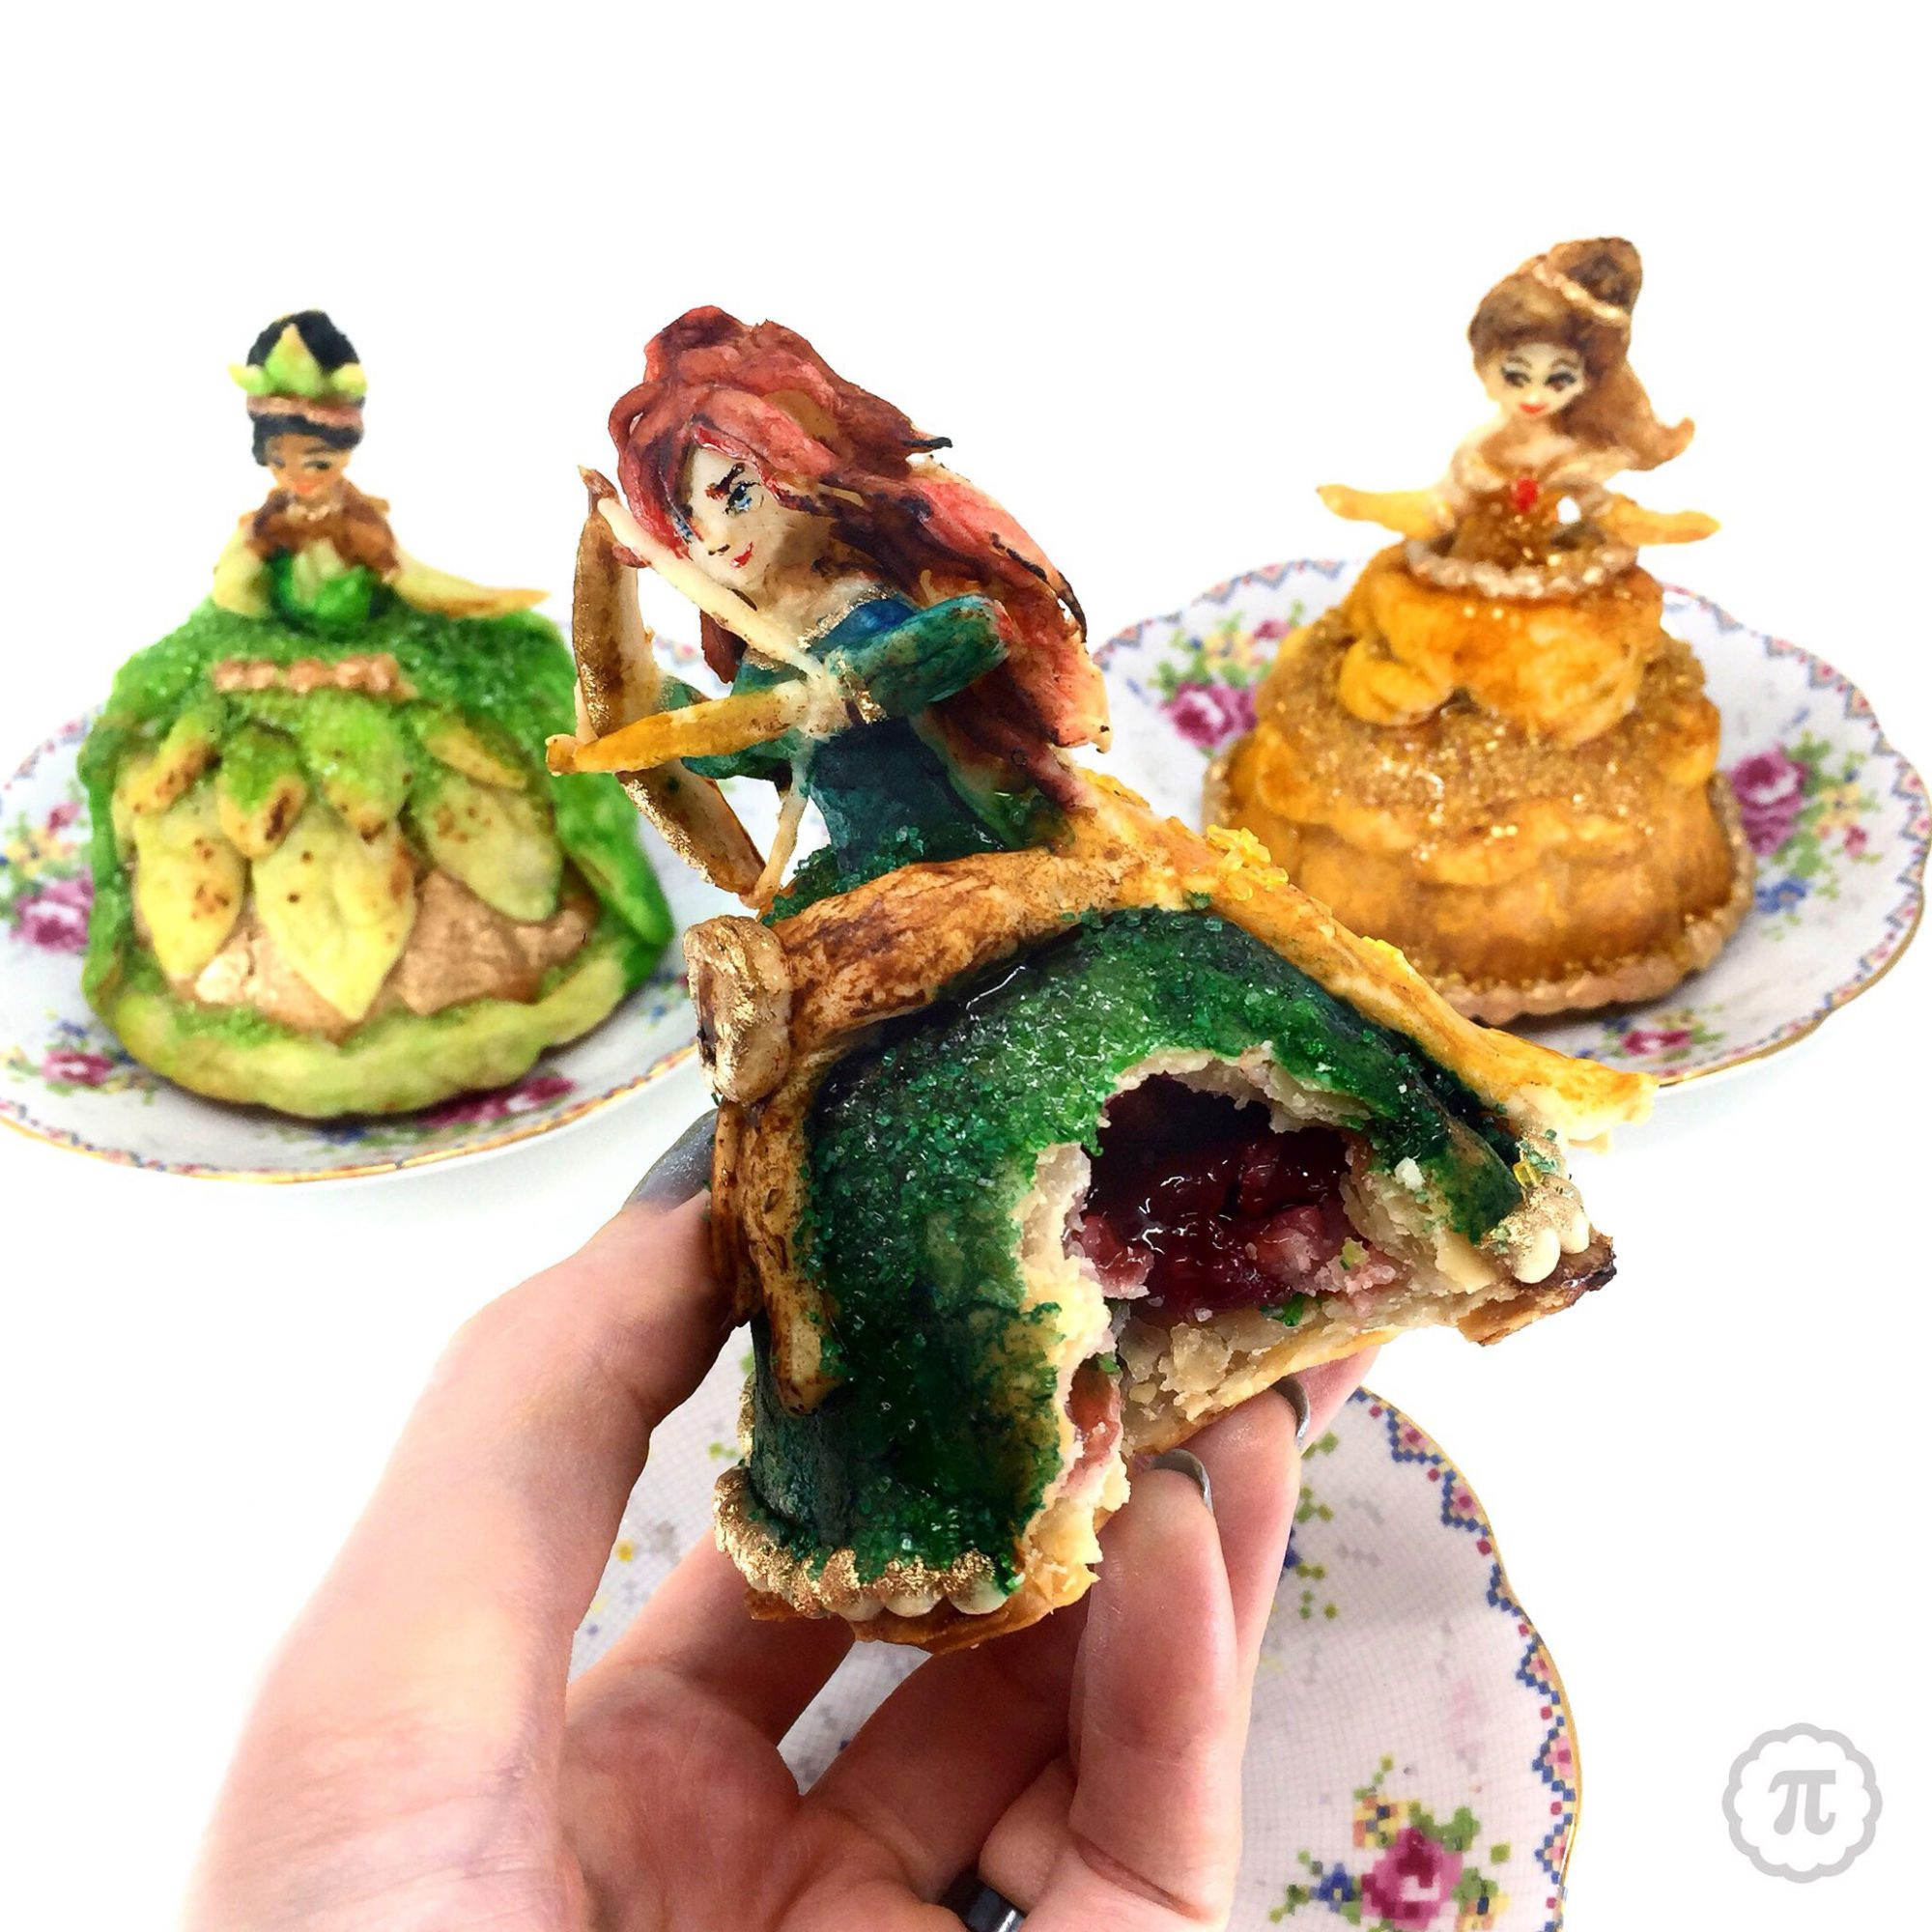 Disney Princess Hand Pies